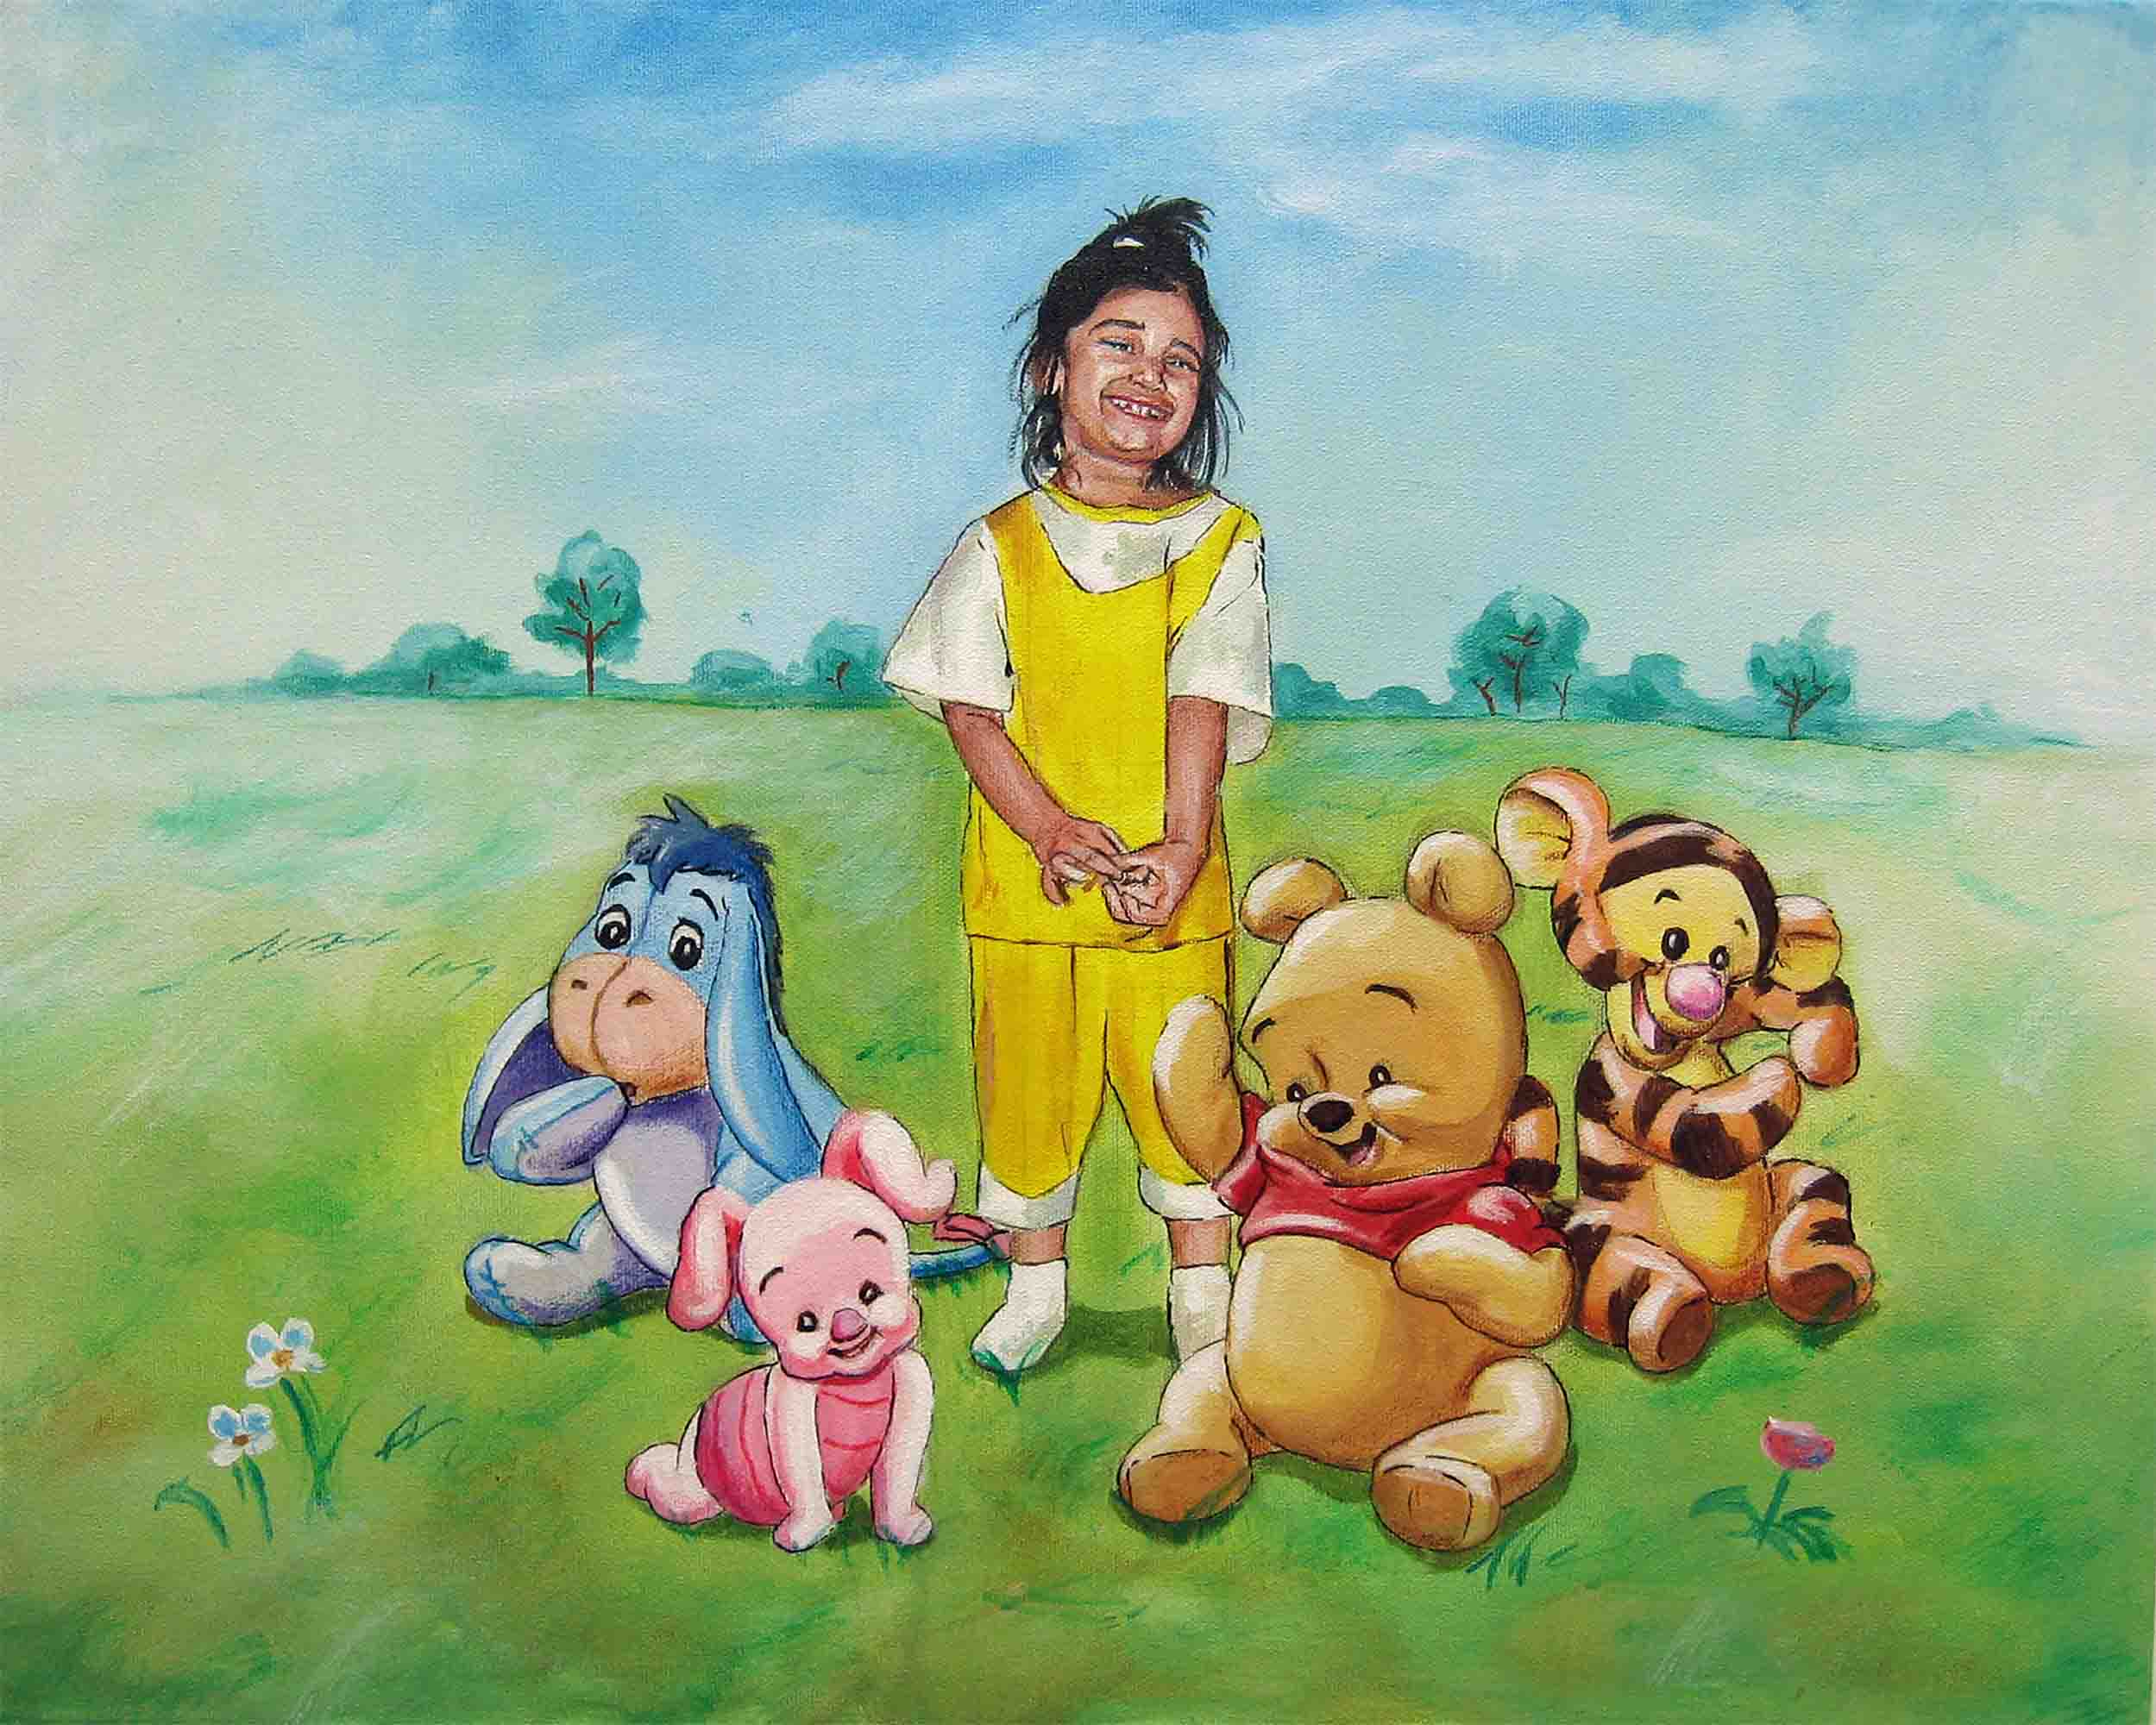 Akila's daughter with Winnie the Pooh & Friends